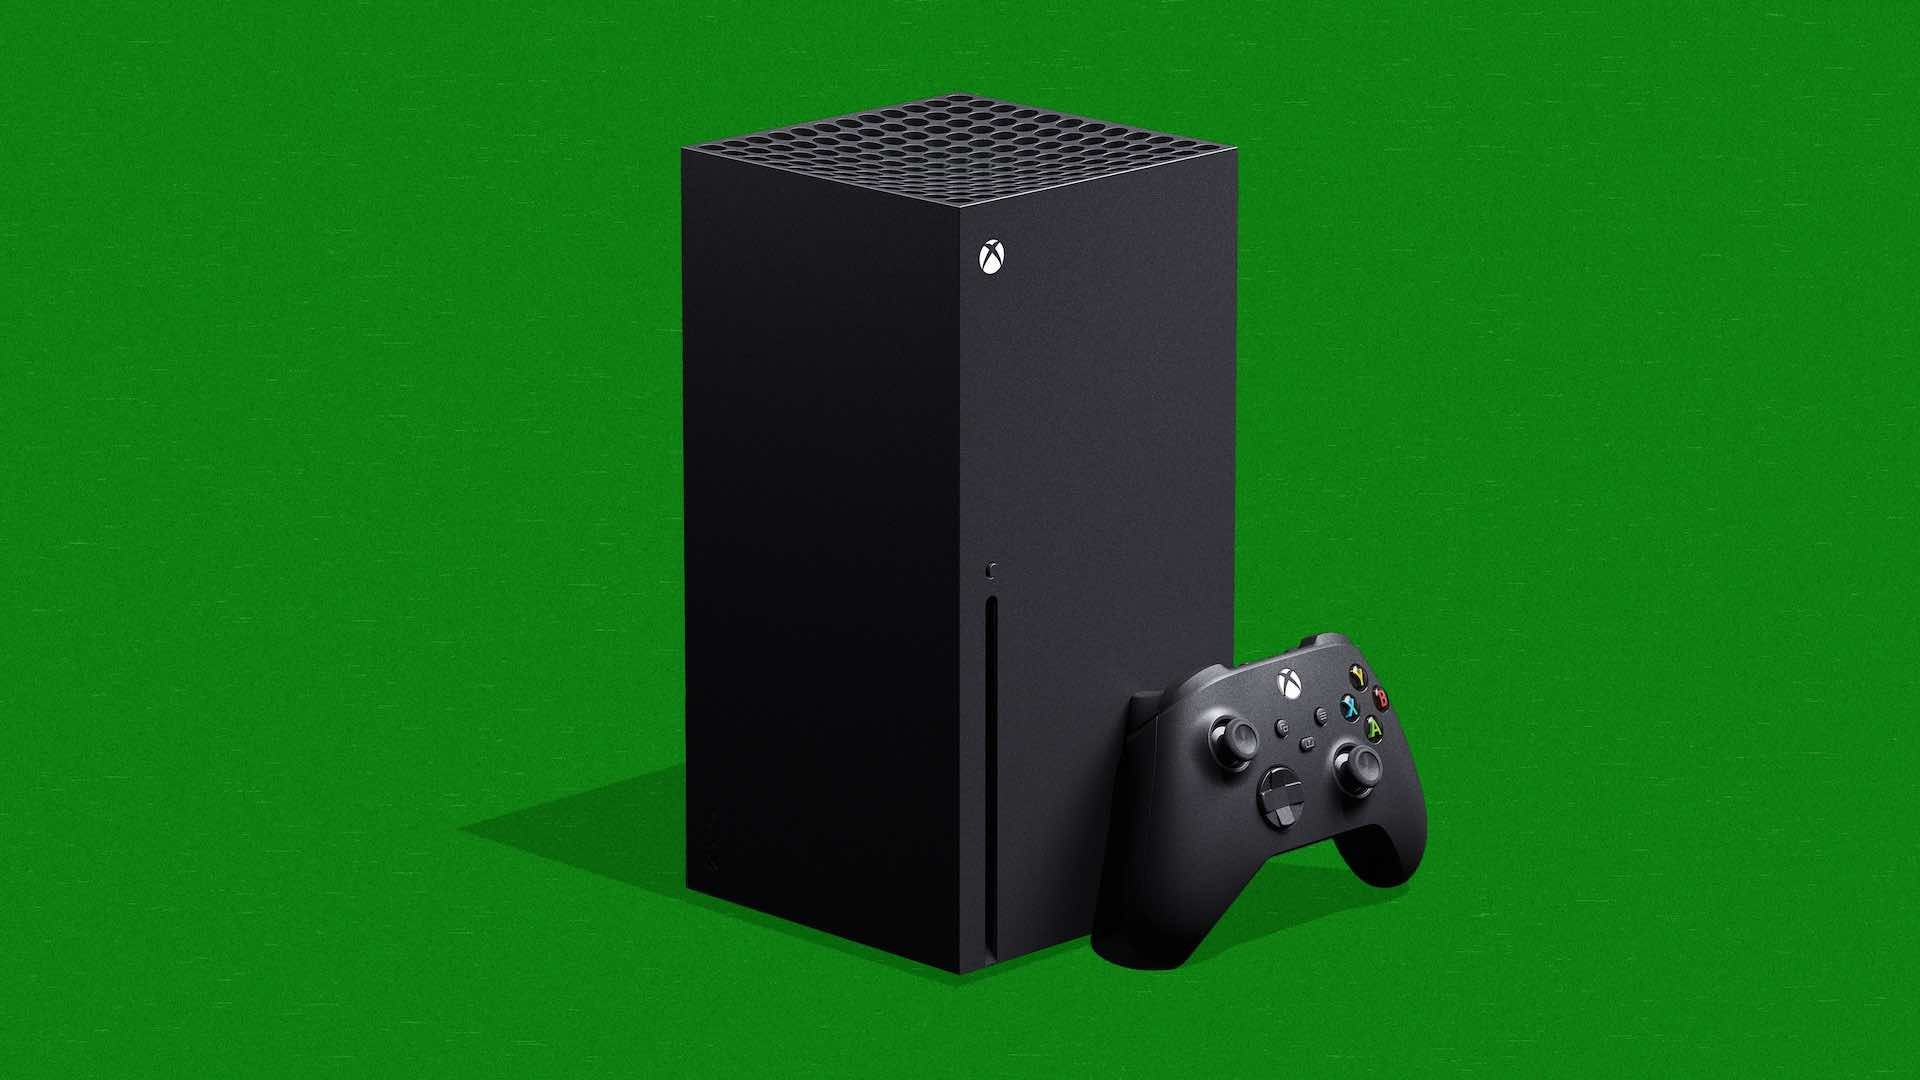 Xbox Series X Launch at E3 2020 Event Confirmed, Microsoft Xbox drops Hints on Twitter